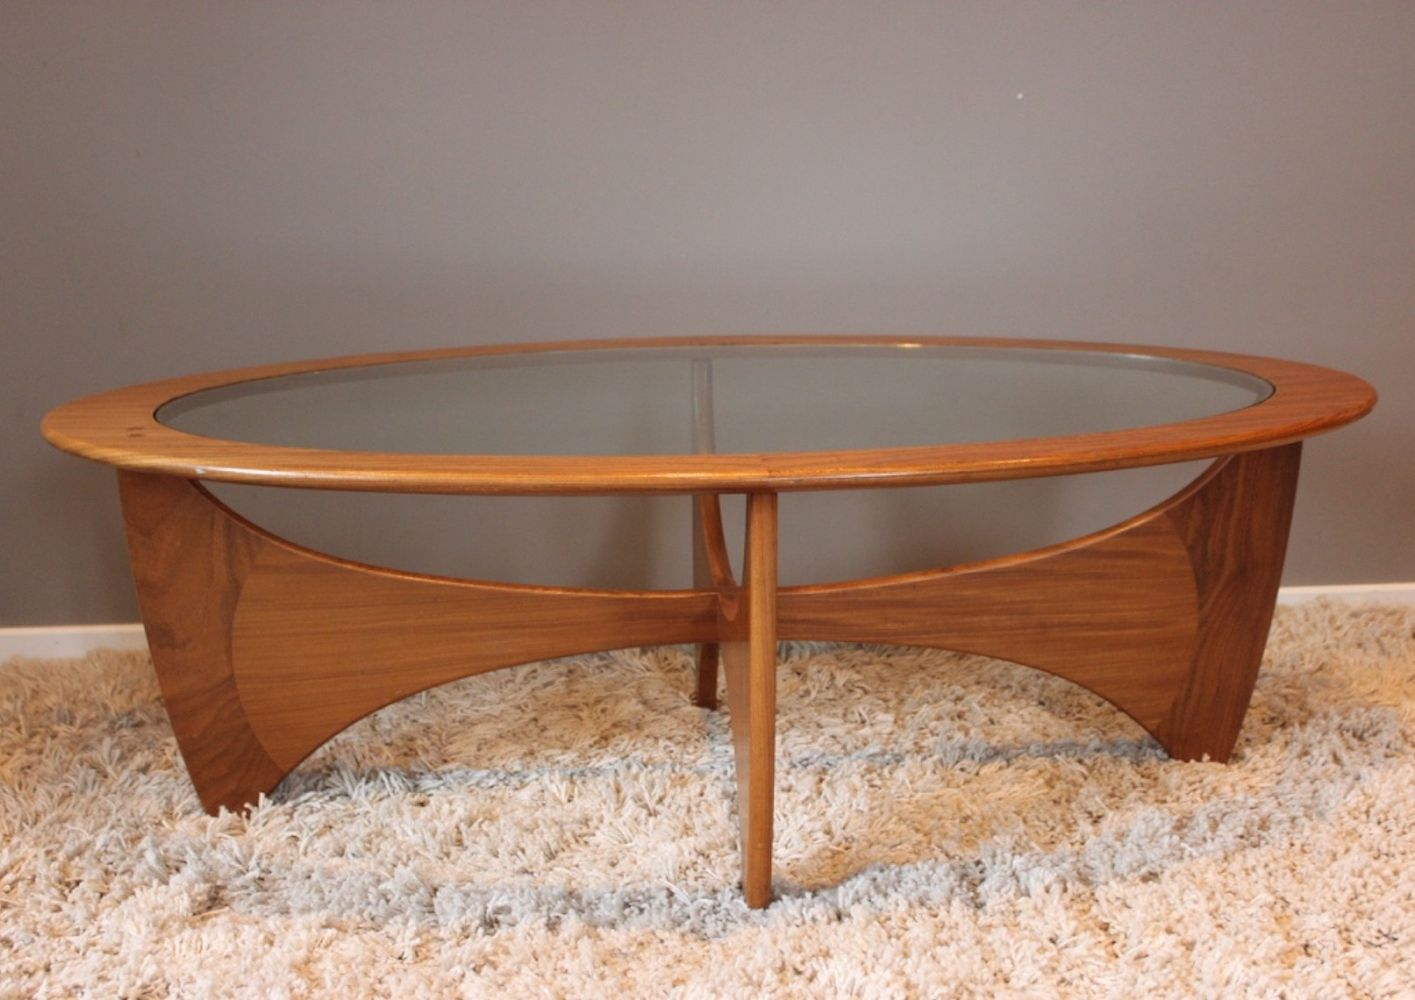 For sale Vintage teak & glass oval coffee table by Victor